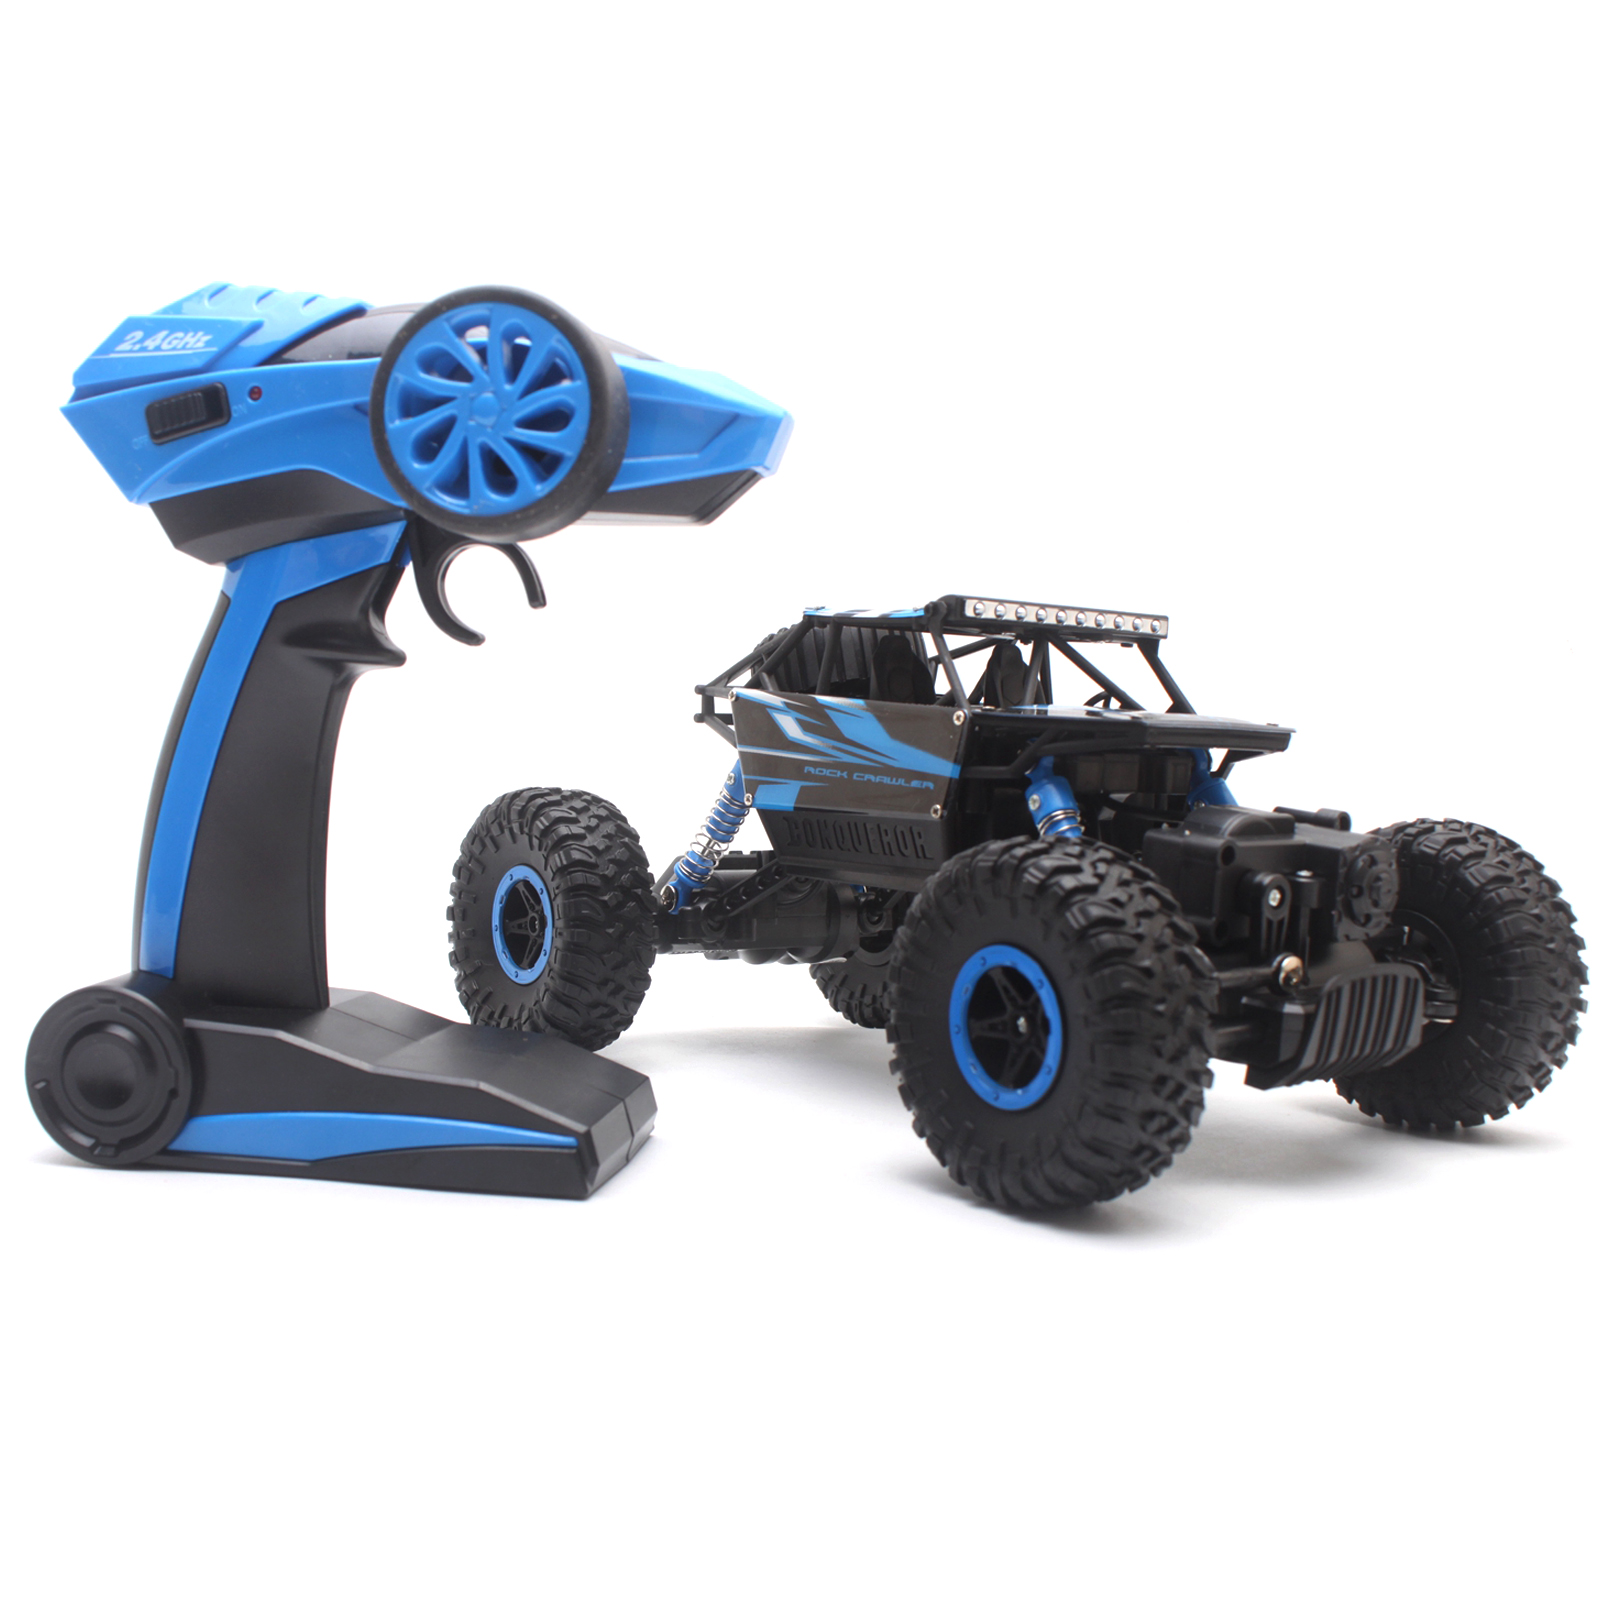 off road rc cars cheap with Rc Off Road Ebay on 451697037598091367 furthermore Car Tyres besides Toy Car Wheels And Axles likewise 32816887039 further Remote Control Toys For Sale The Best And Cheap Rc Toys.